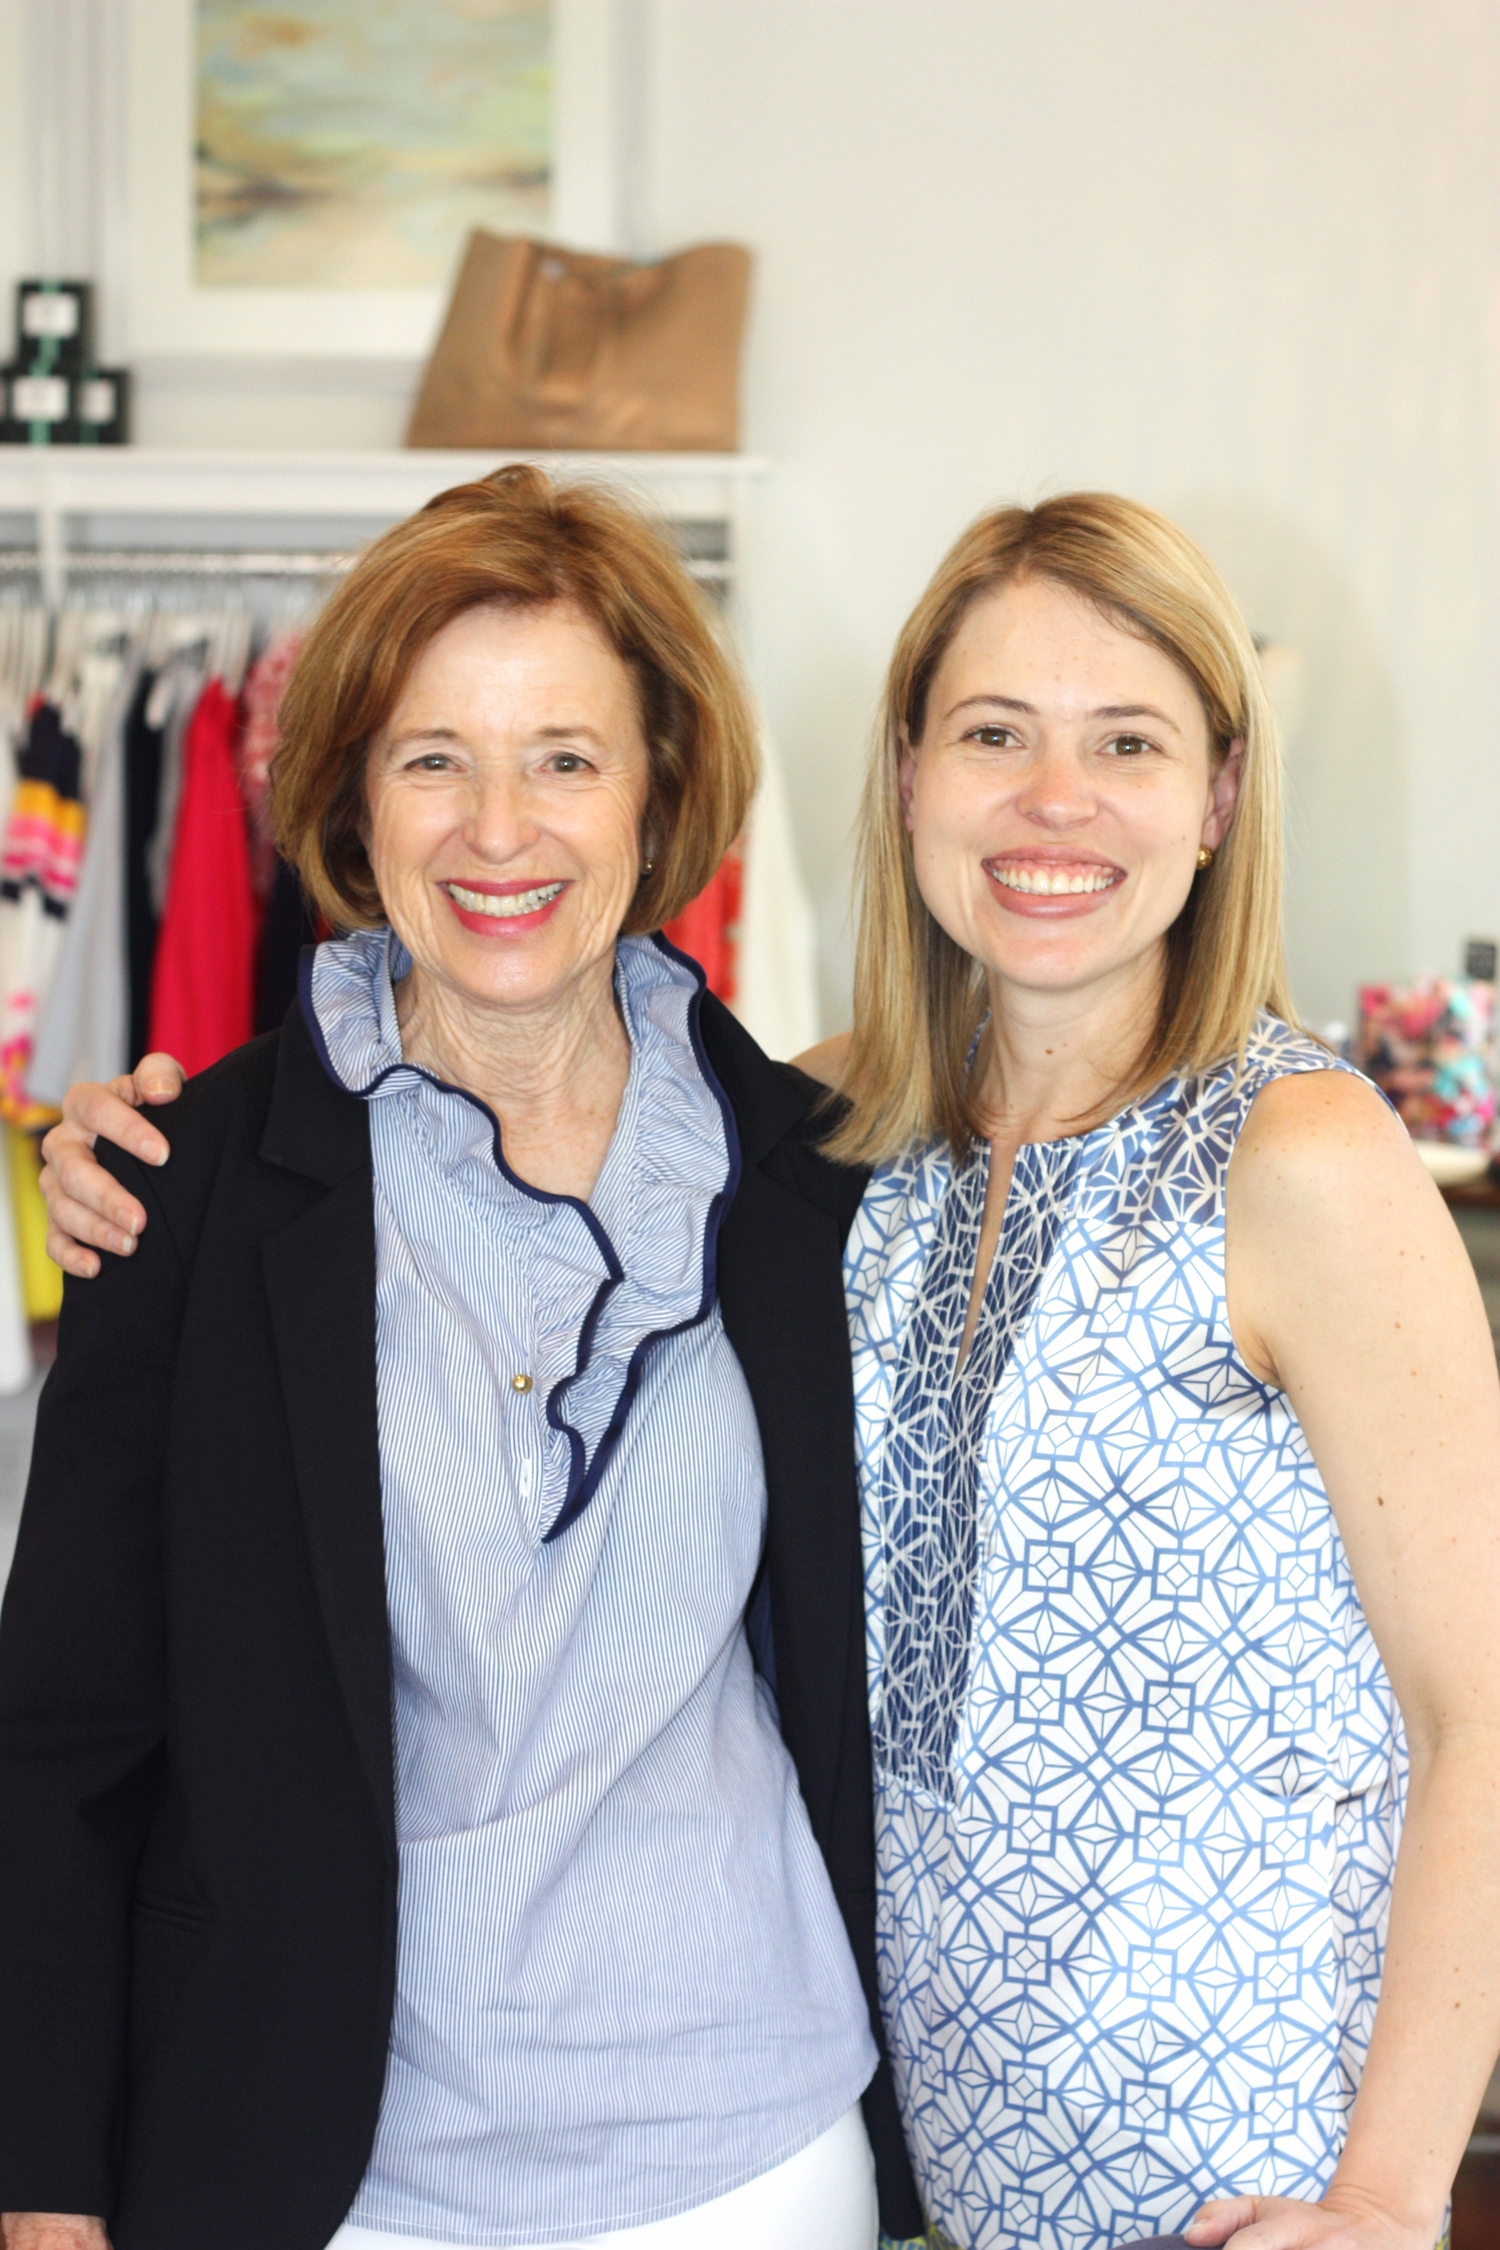 Laura Belsinger and her mom Susie Endry, the stylish masterminds behind The Bluetique